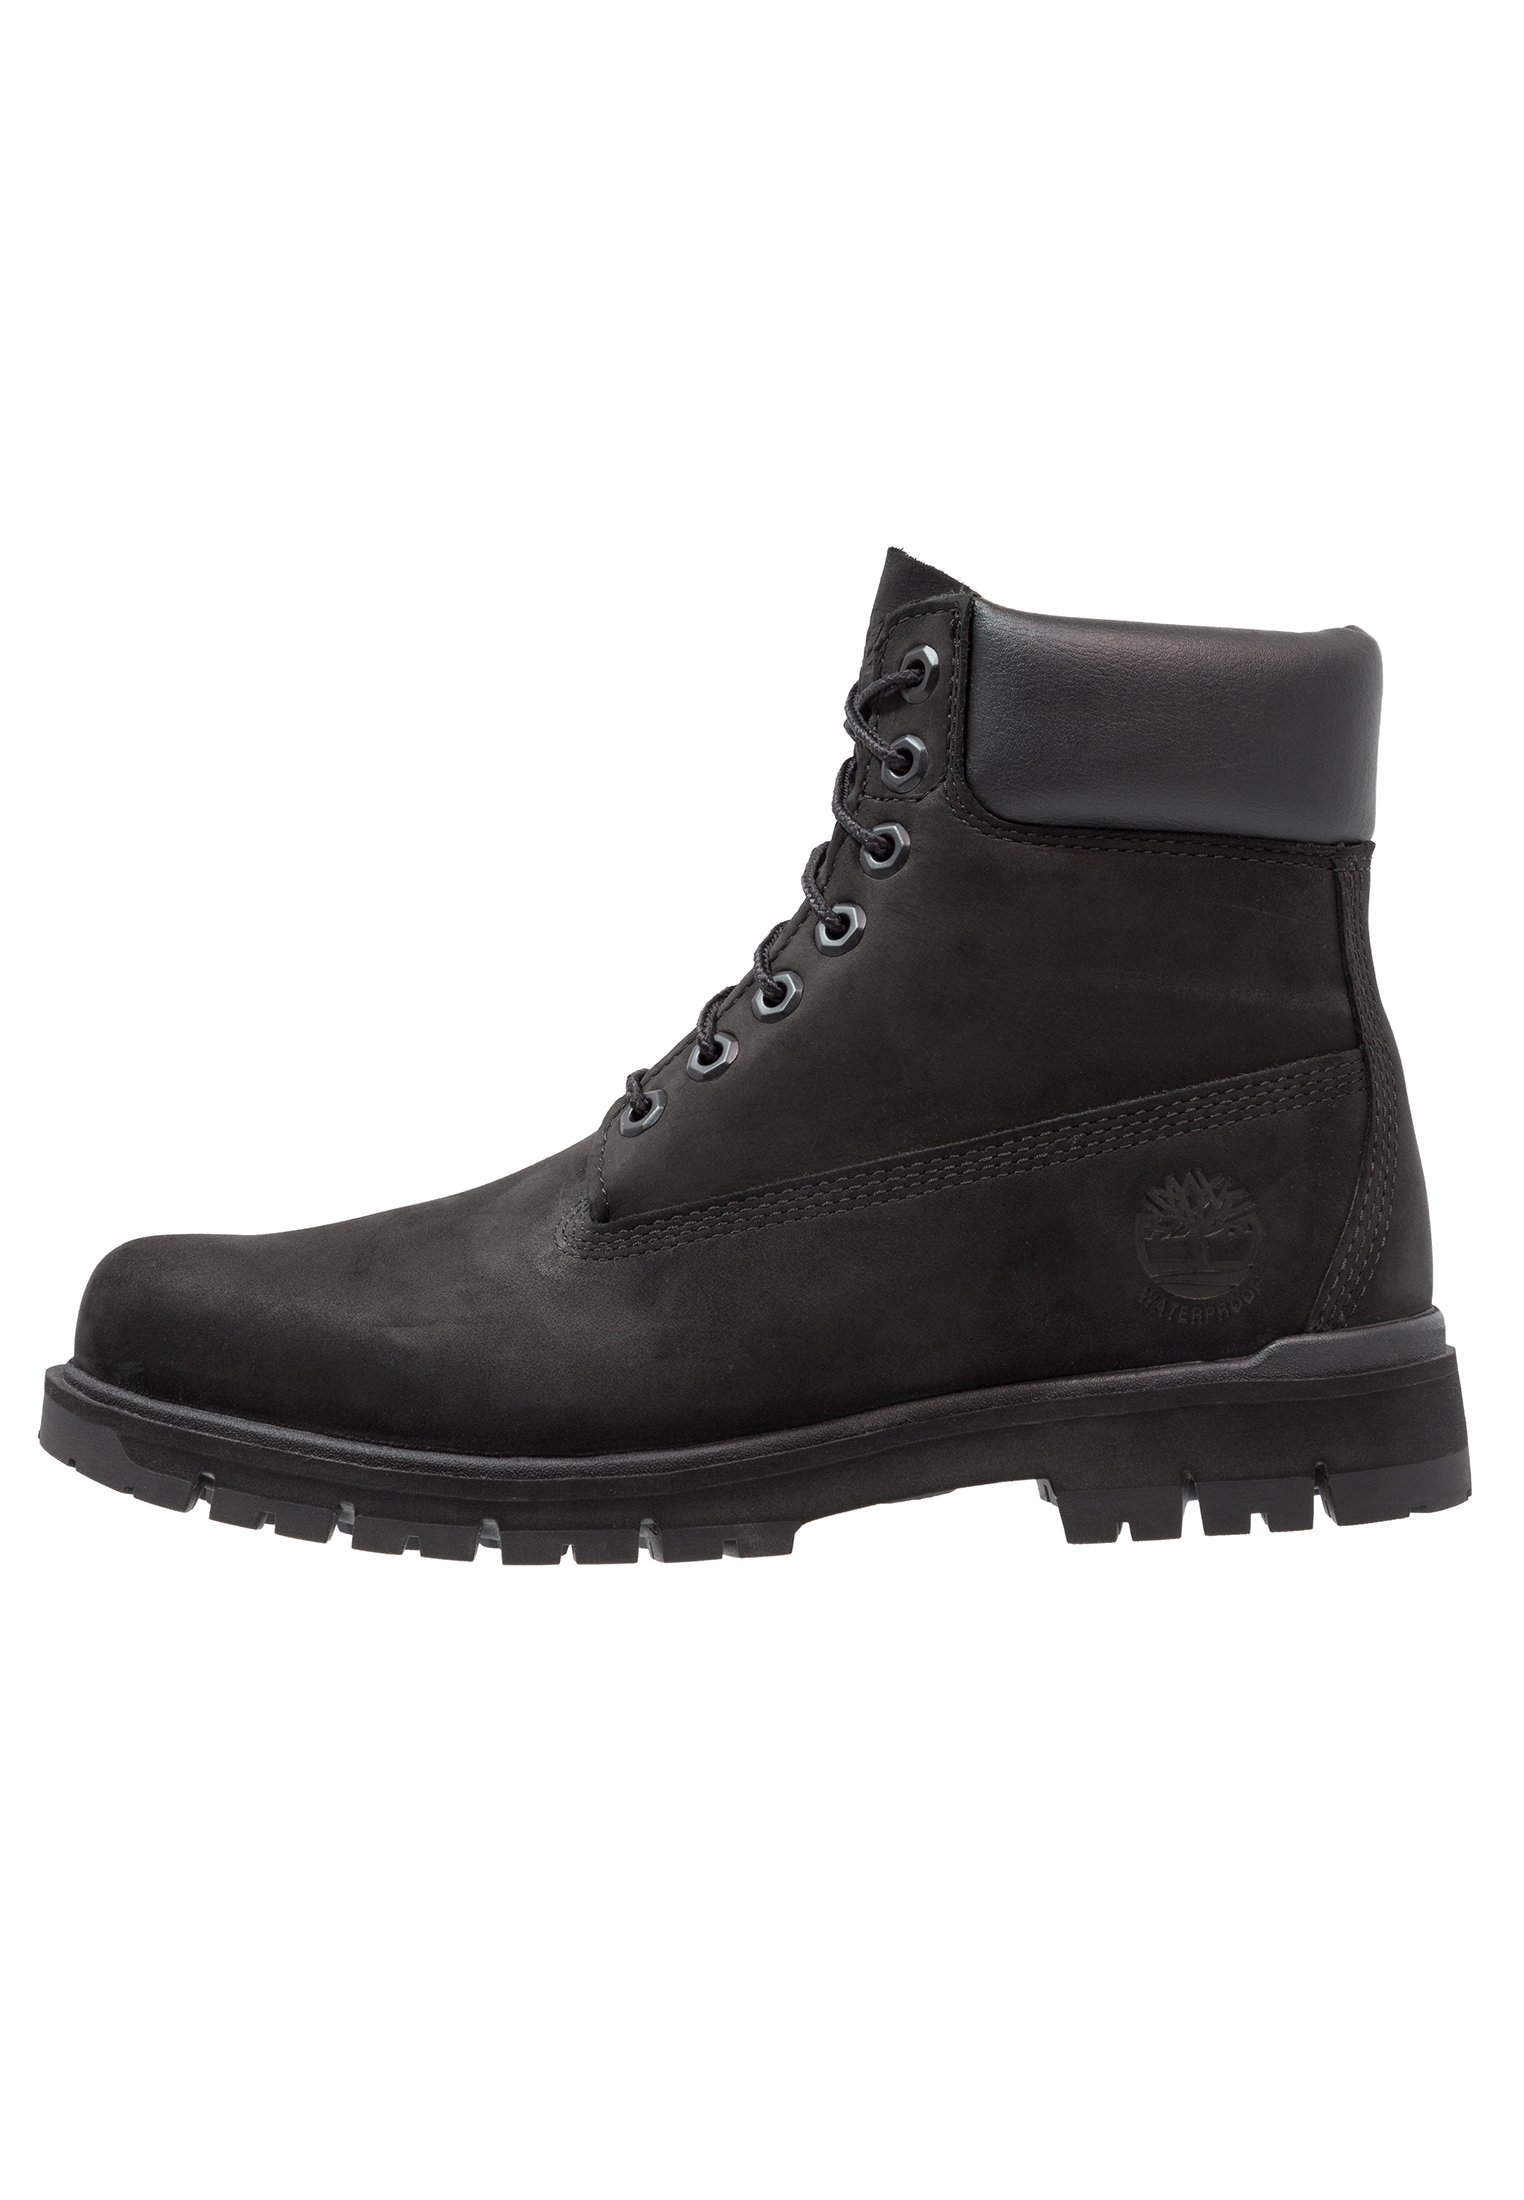 bottes timberland homme cuir